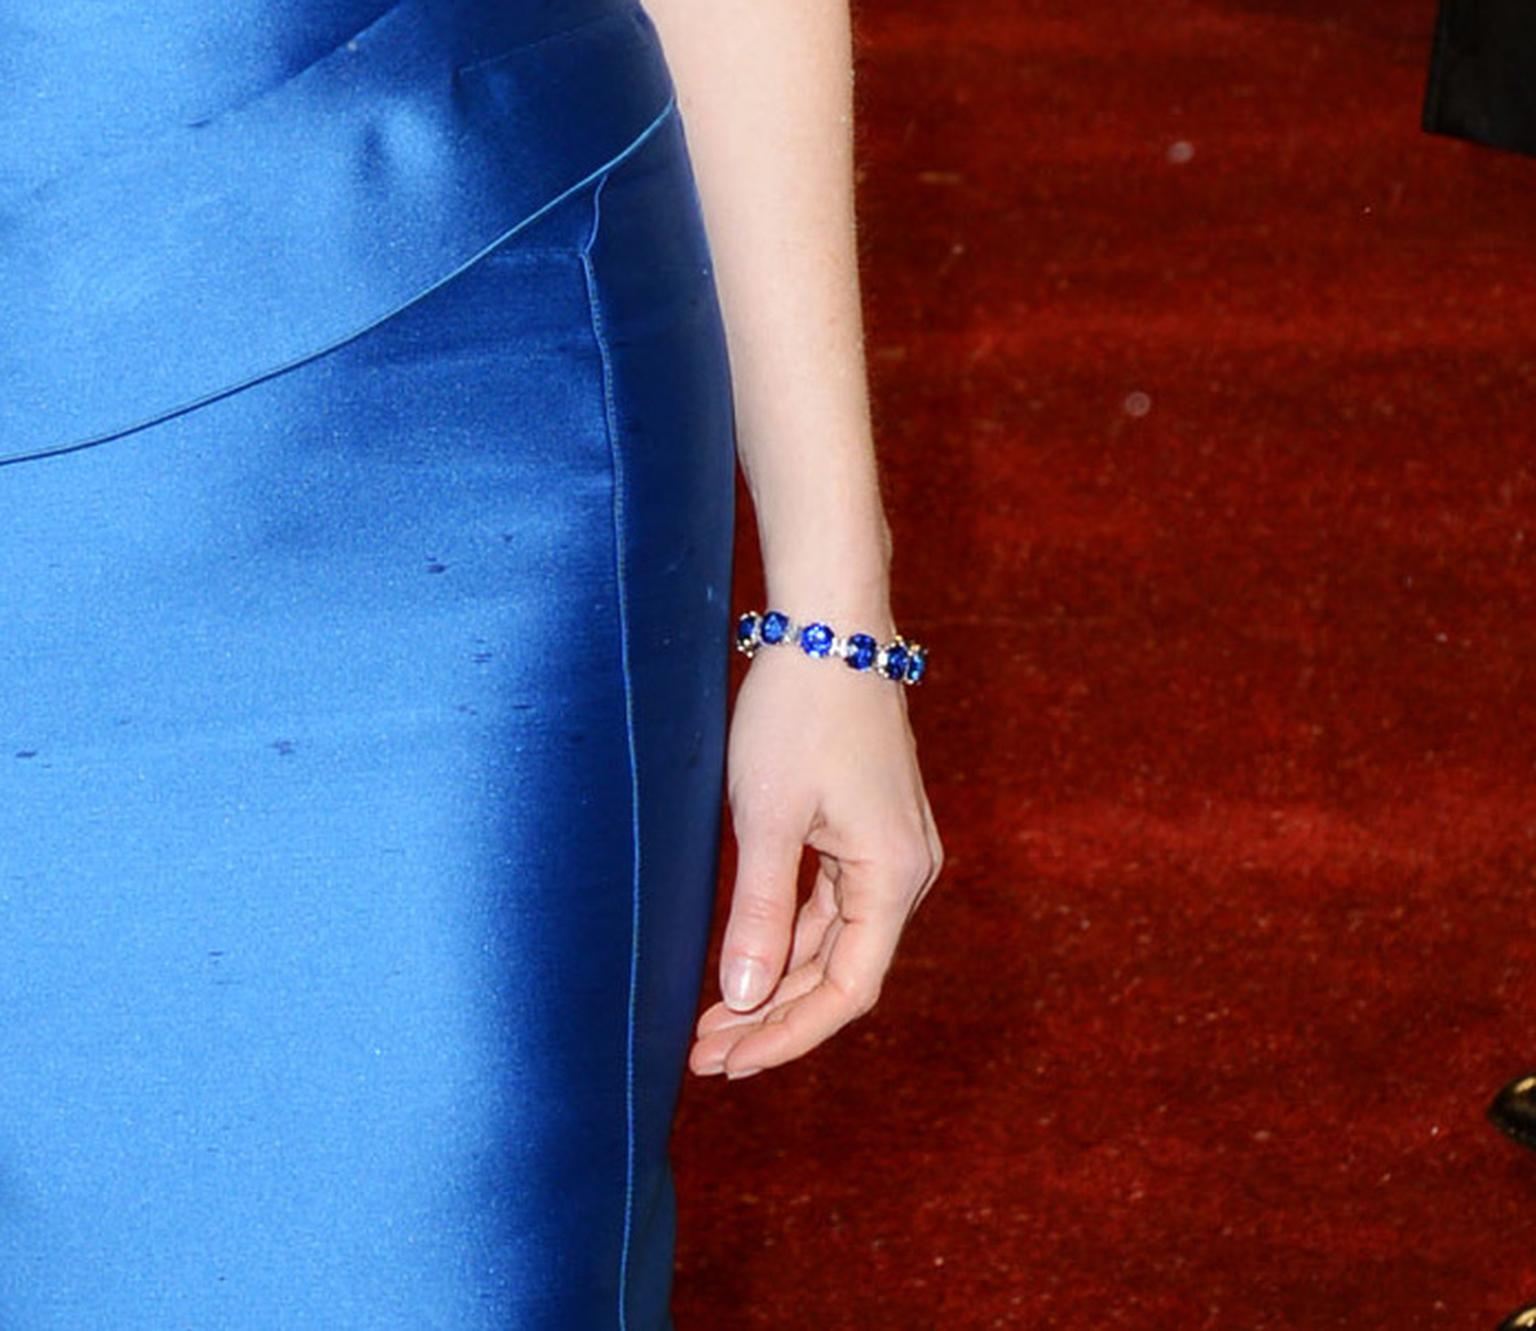 BAFTA 2013 nominee Jessica Chastain wore a Harry Winston sapphire and diamond bracelet to match her earrings